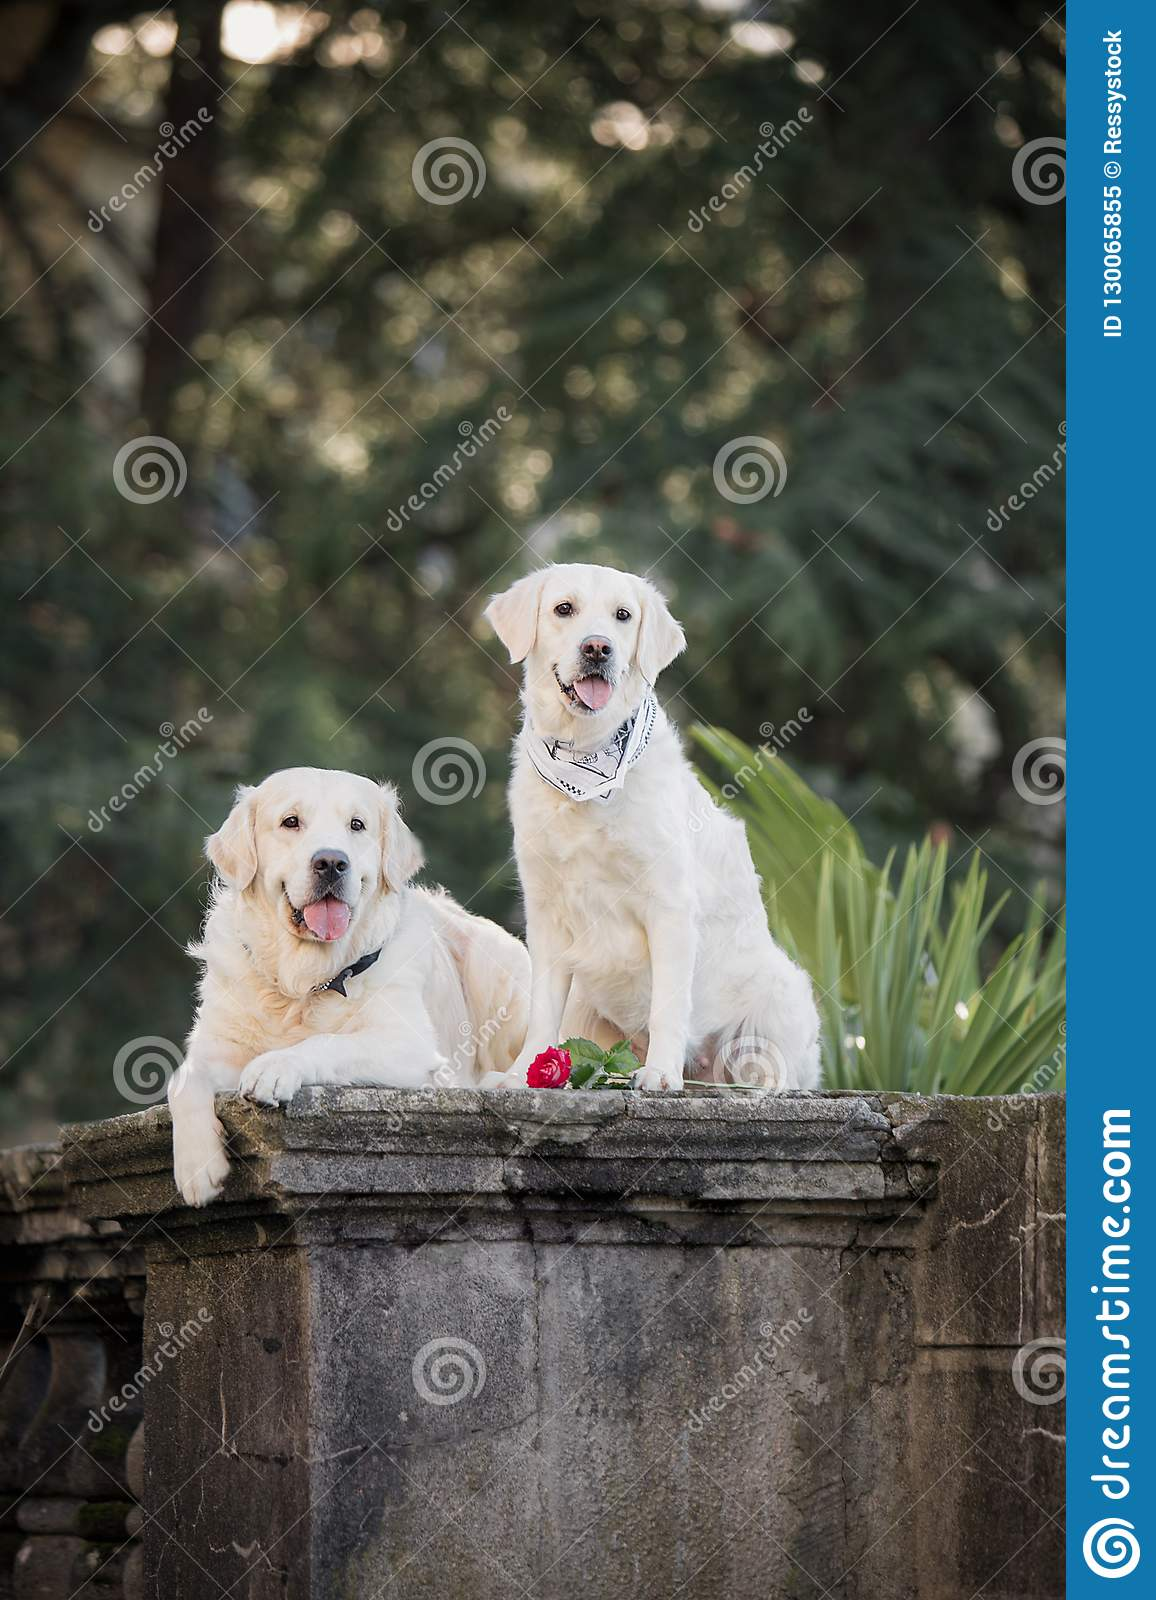 Two dogs of breed Golden Retriever, sitting on a dark background among the palm trees